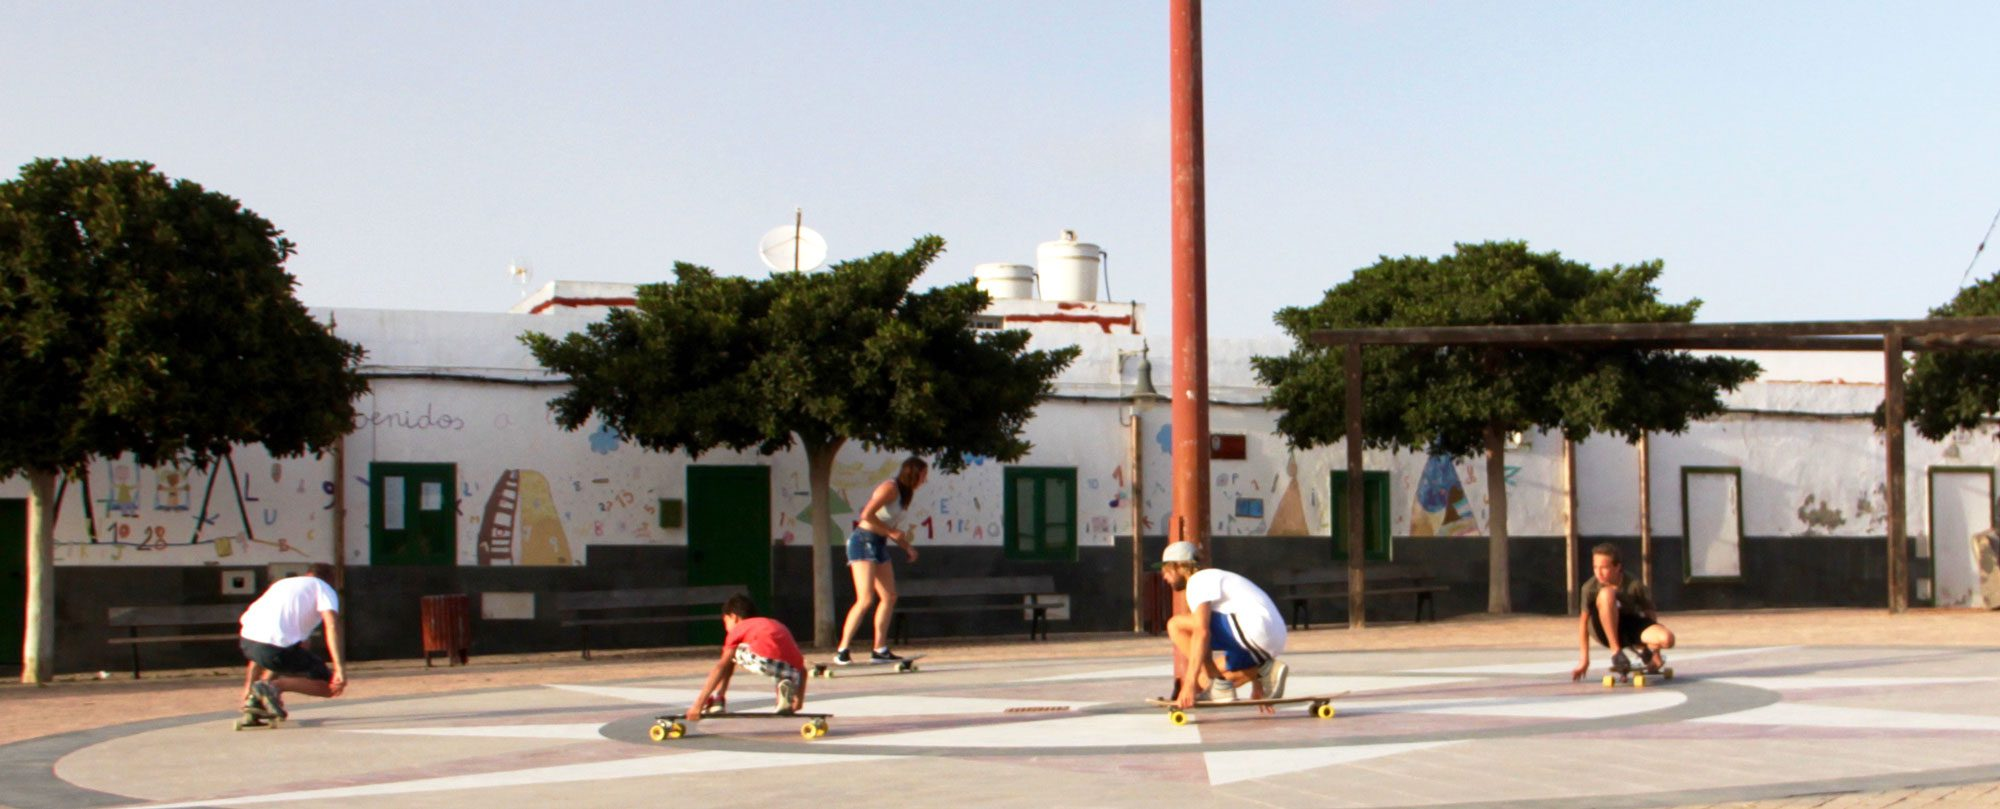 Skate-Lessons for families with the Longboard Champion Carl Foelster